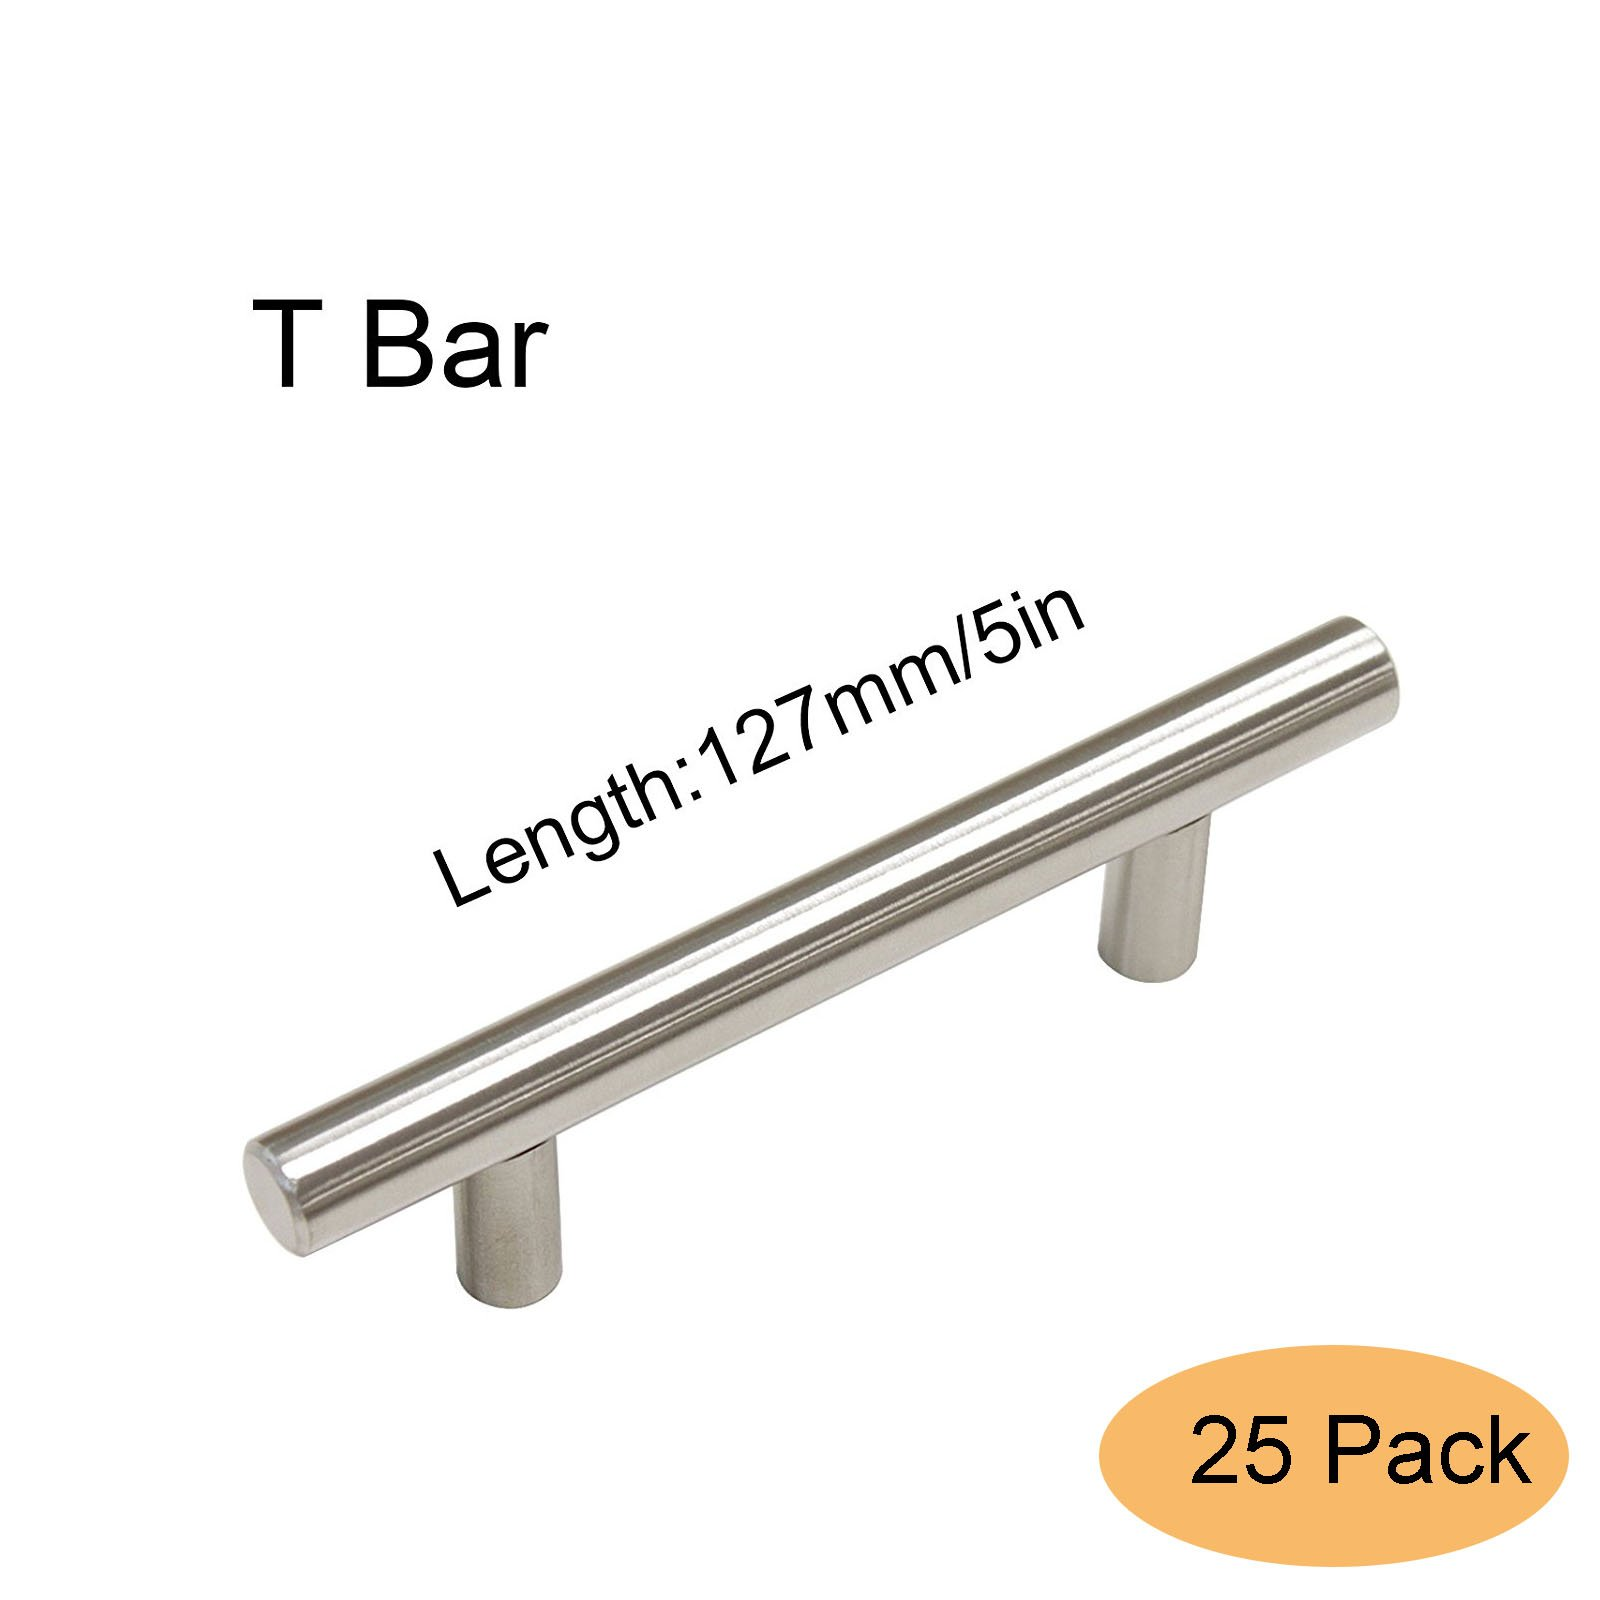 Gobrico Kitchen Cabinet T Bar Handle Stainless Steel Furniture 3in Drawer Dresser Pull Knob Hardware 25 Pack ( Center to Center:76mm, overall Length:5in)) by Gobrico